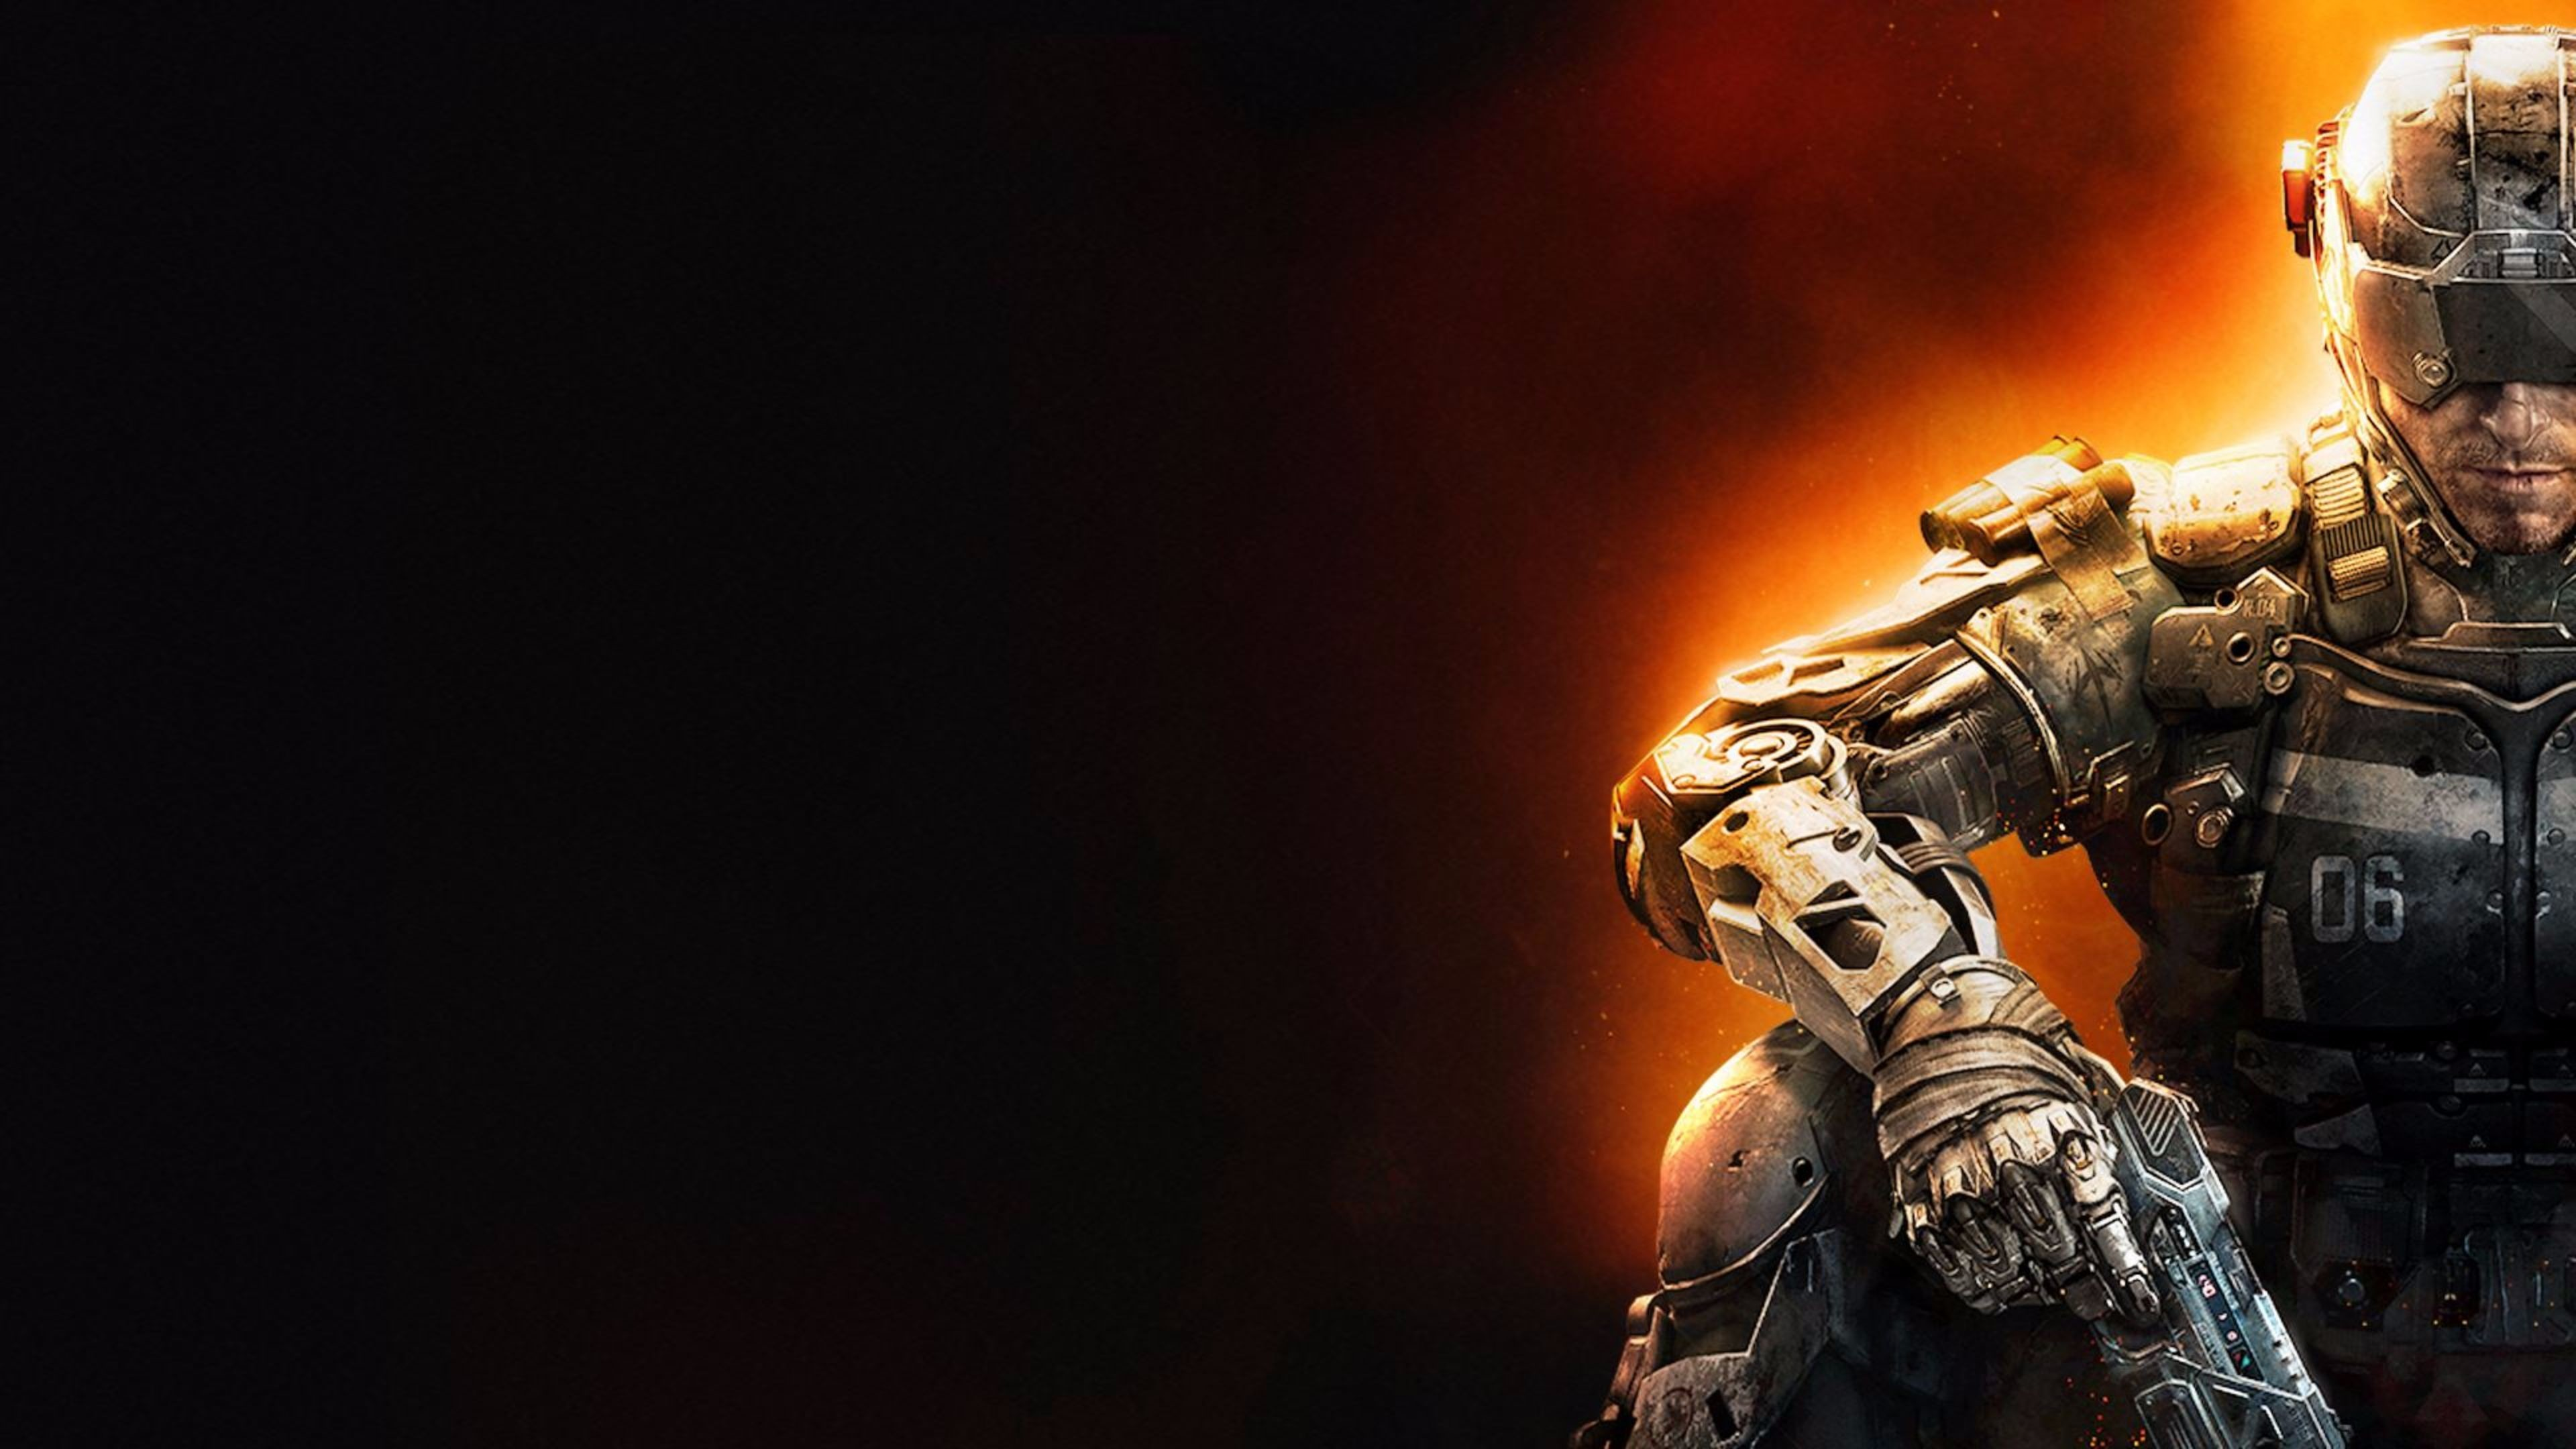 Res: 3840x2160, Black Ops 3 Wallpaper 6